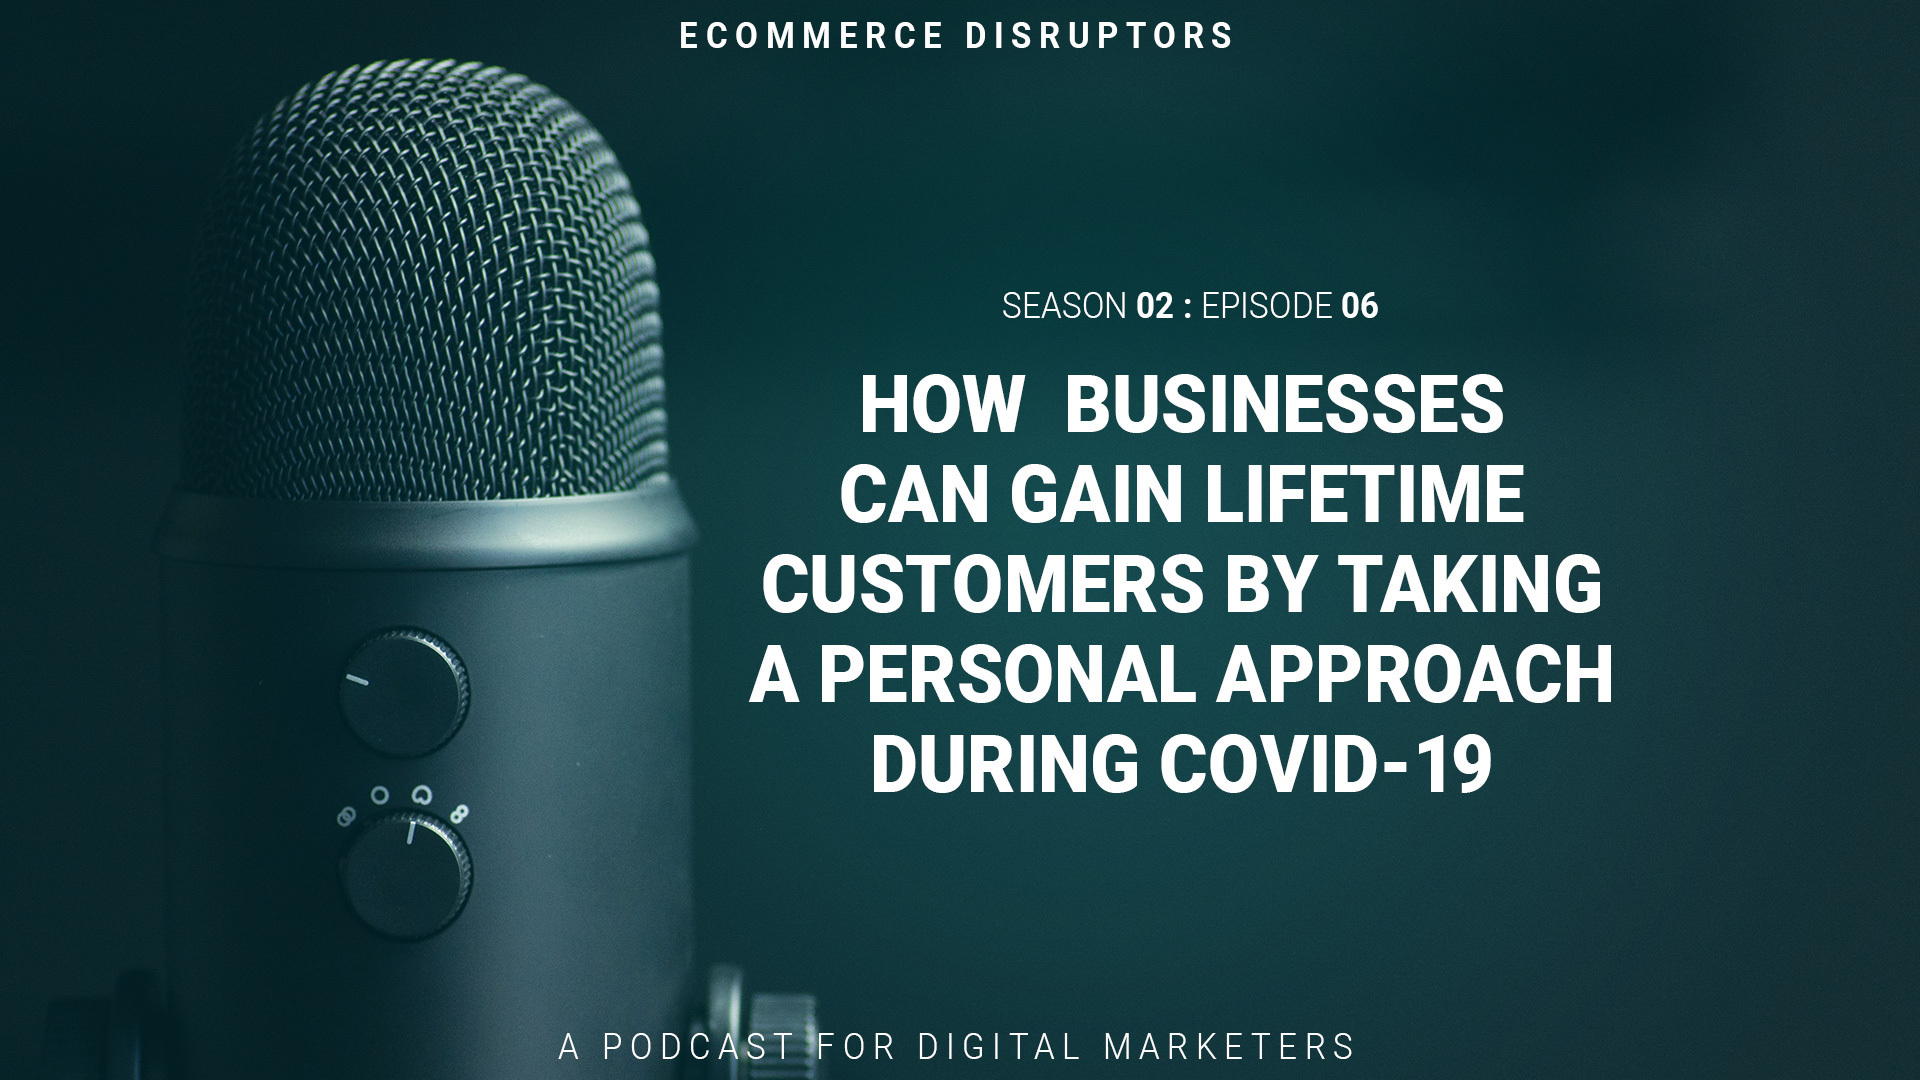 How Businesses Can Gain Lifetime Customers By Taking a Personal Approach During COVID-19